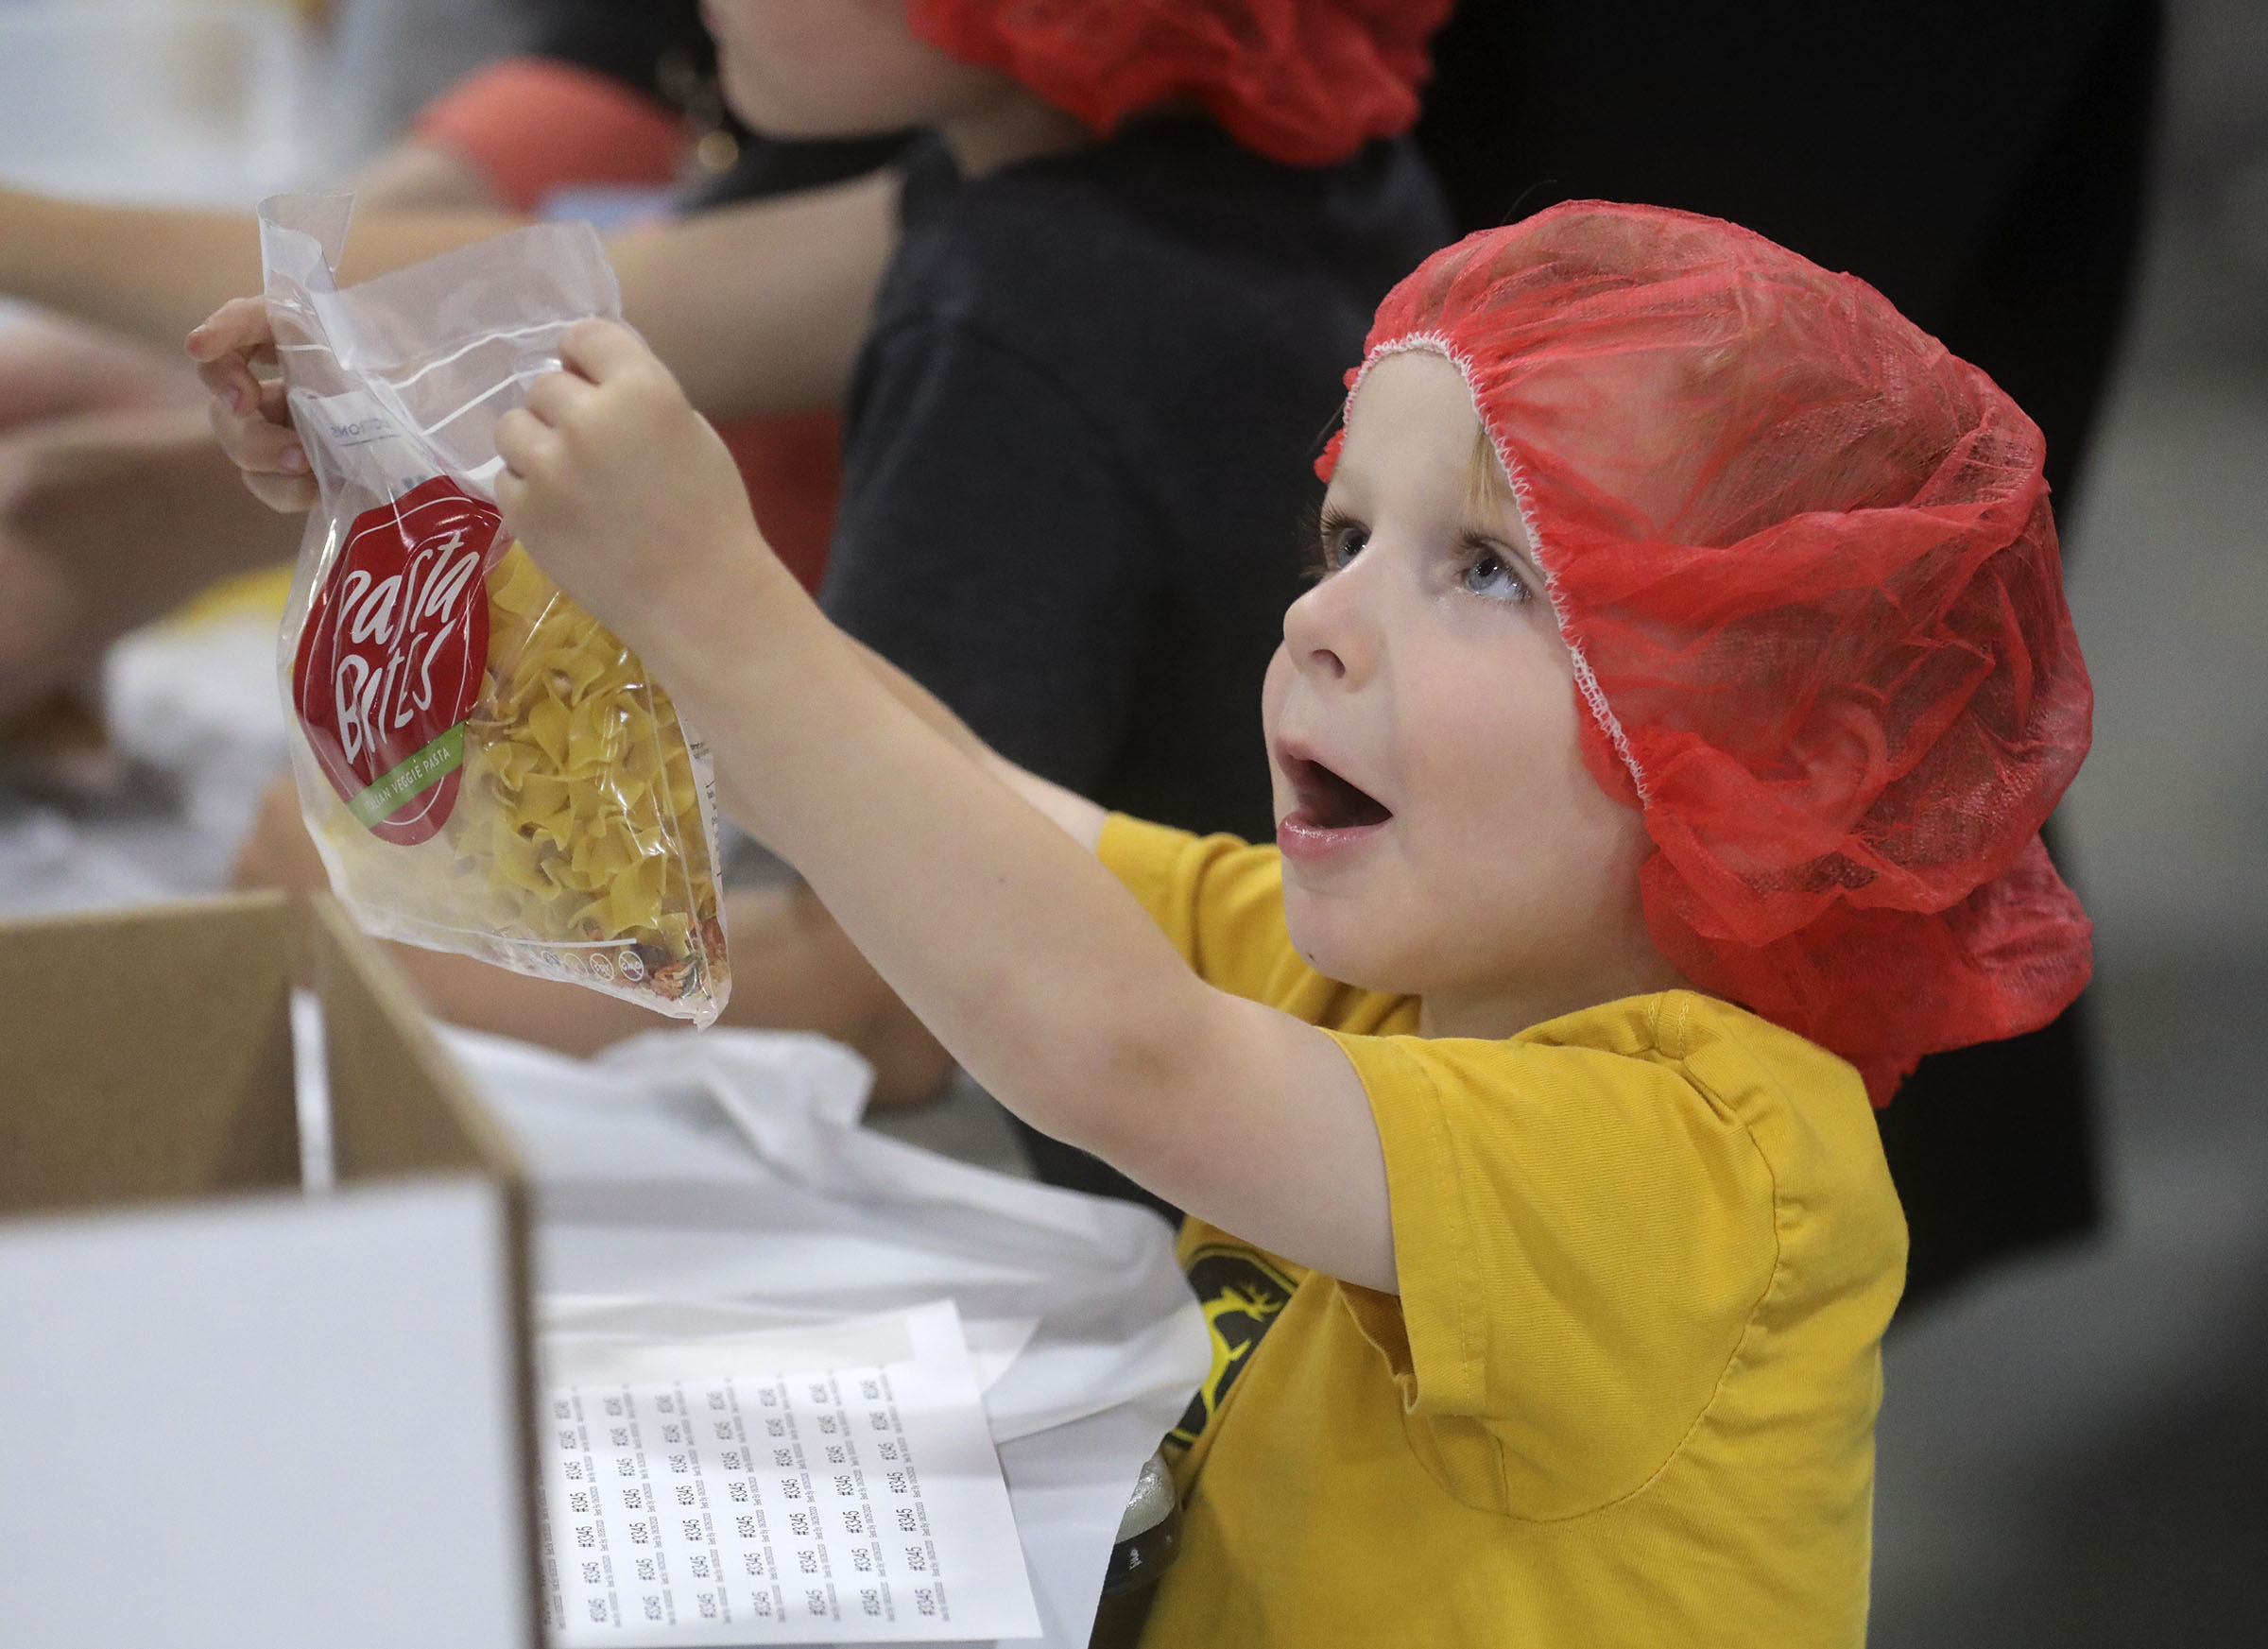 Rhett Thueson helps bag pasta dinners for a service project during the 68th United Nations Civil Society Conference at the Salt Palace Convention Center in Salt Lake City on Monday, Aug. 26, 2019.